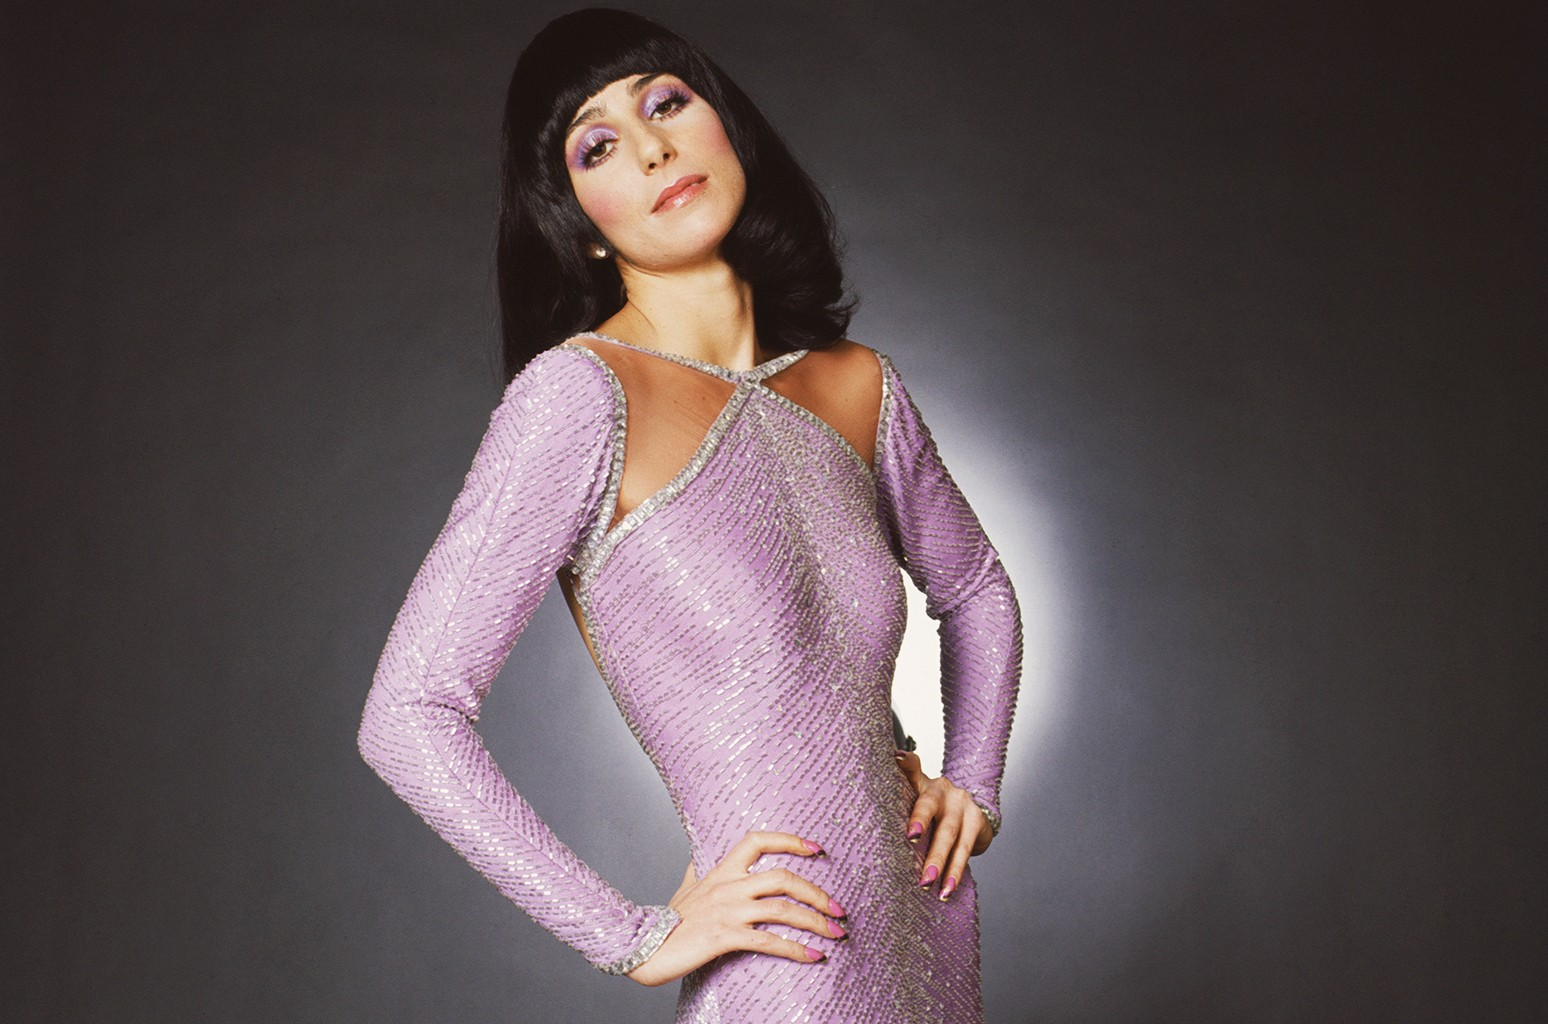 Cher photographed in 1972.